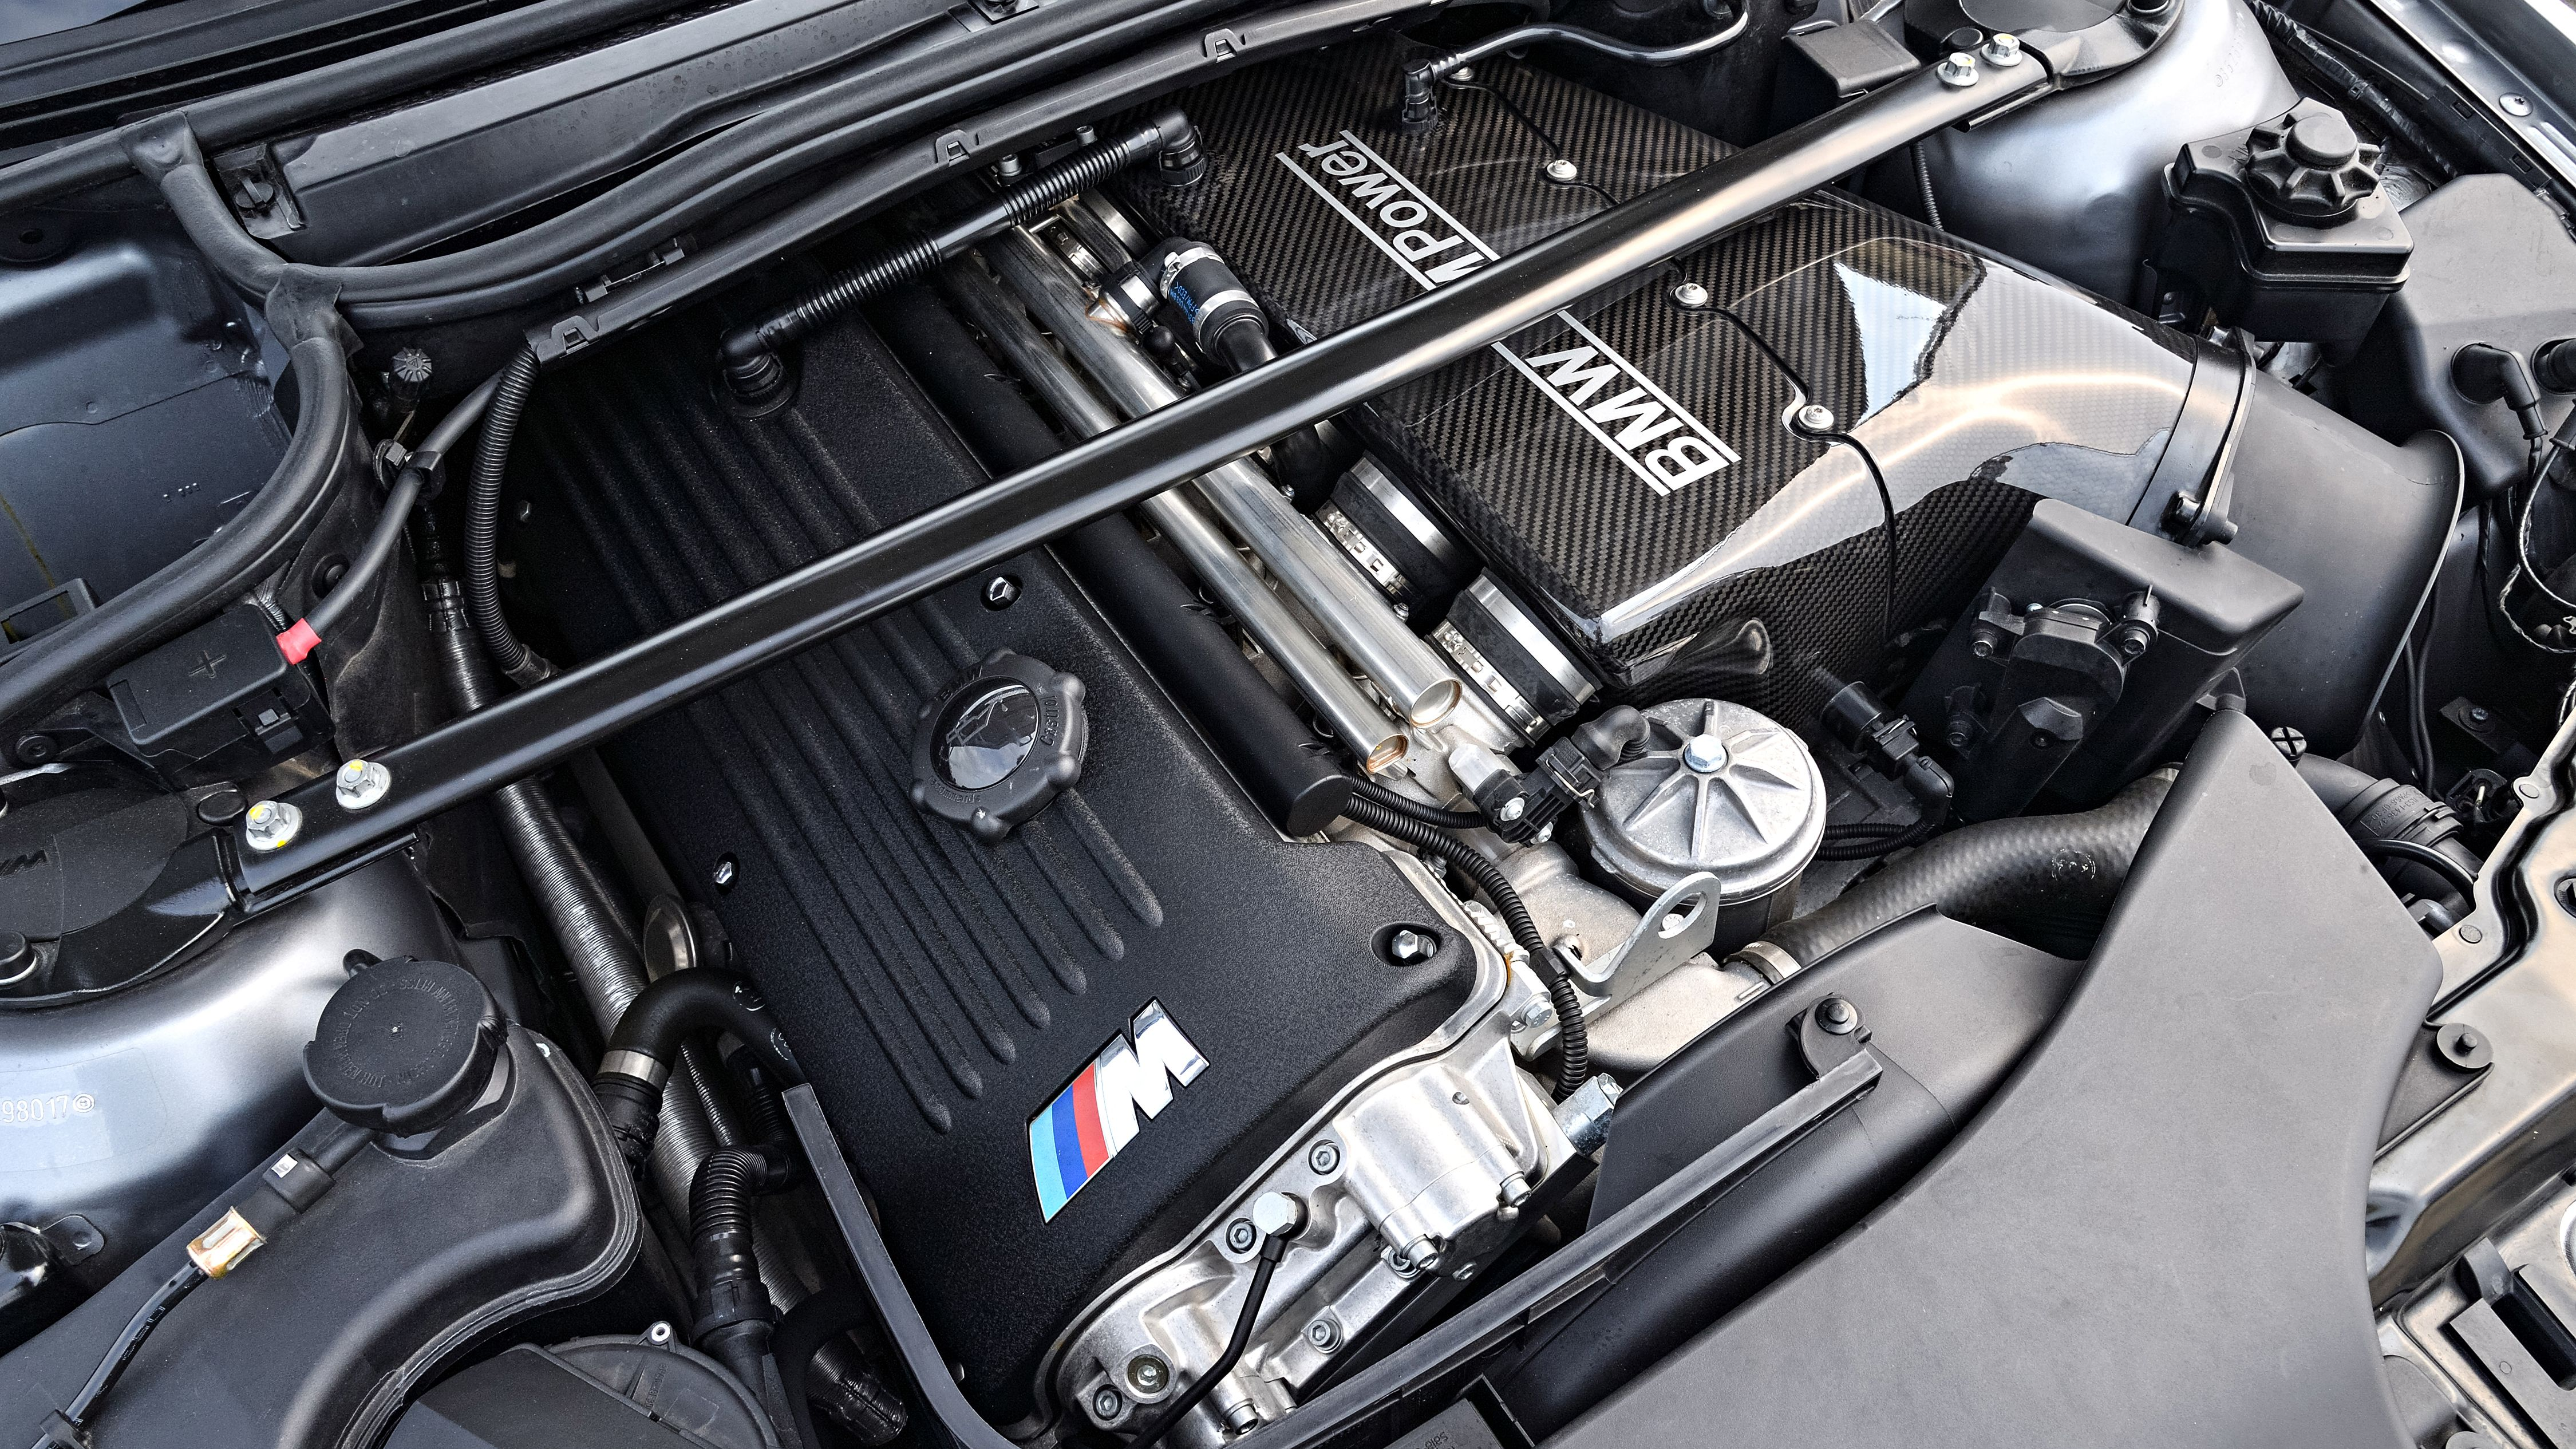 Carbon Intake Plenum And Airbox Adds Great Intake Sound And